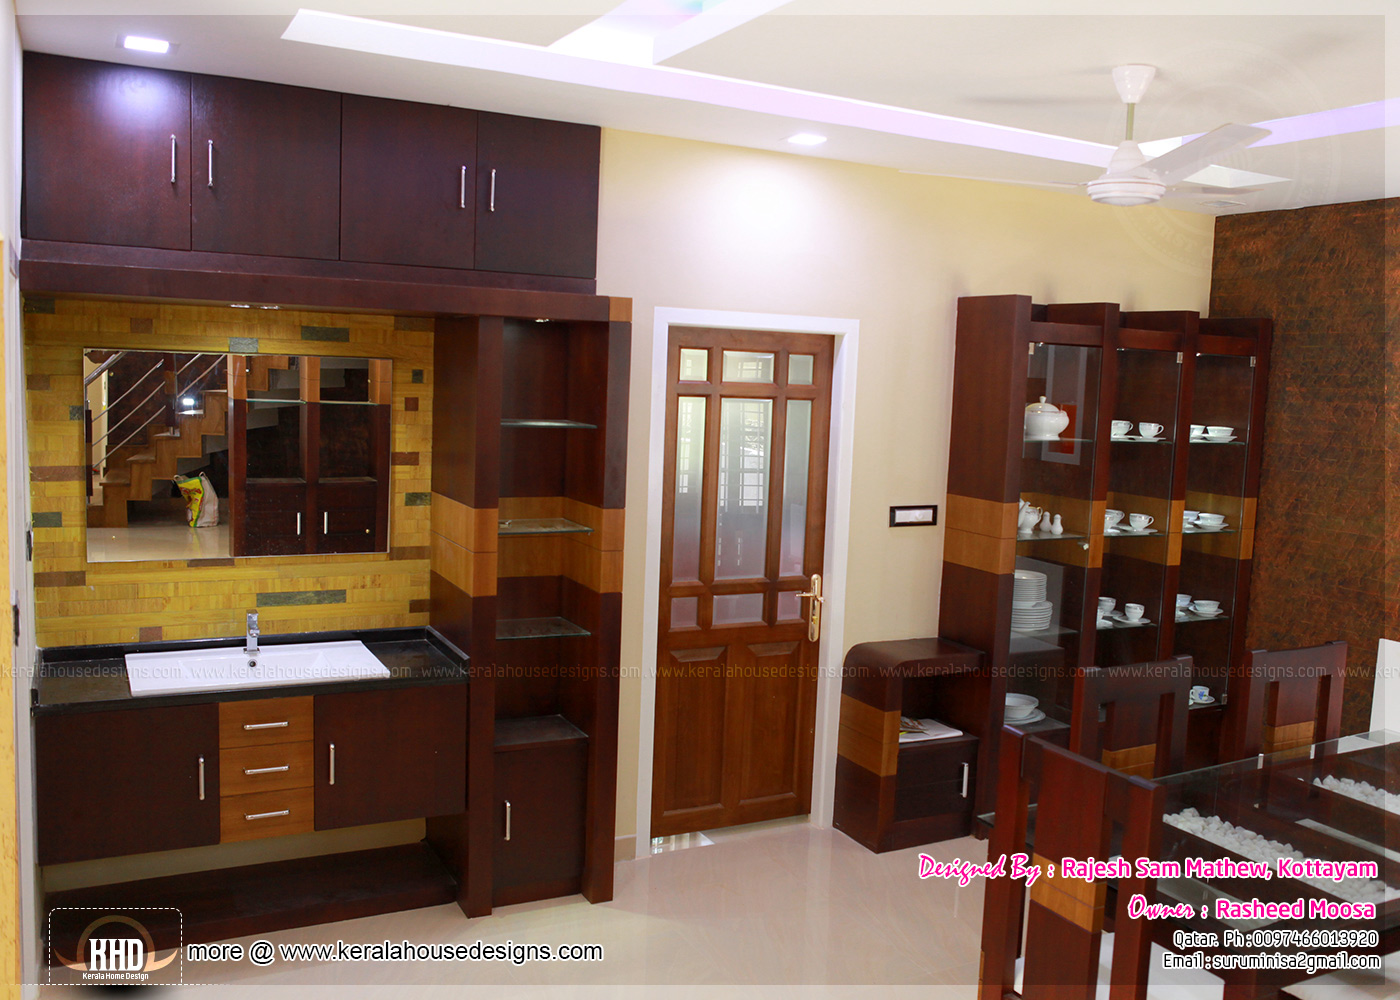 Kerala interior design with photos kerala home design for Kerala house interior arch design